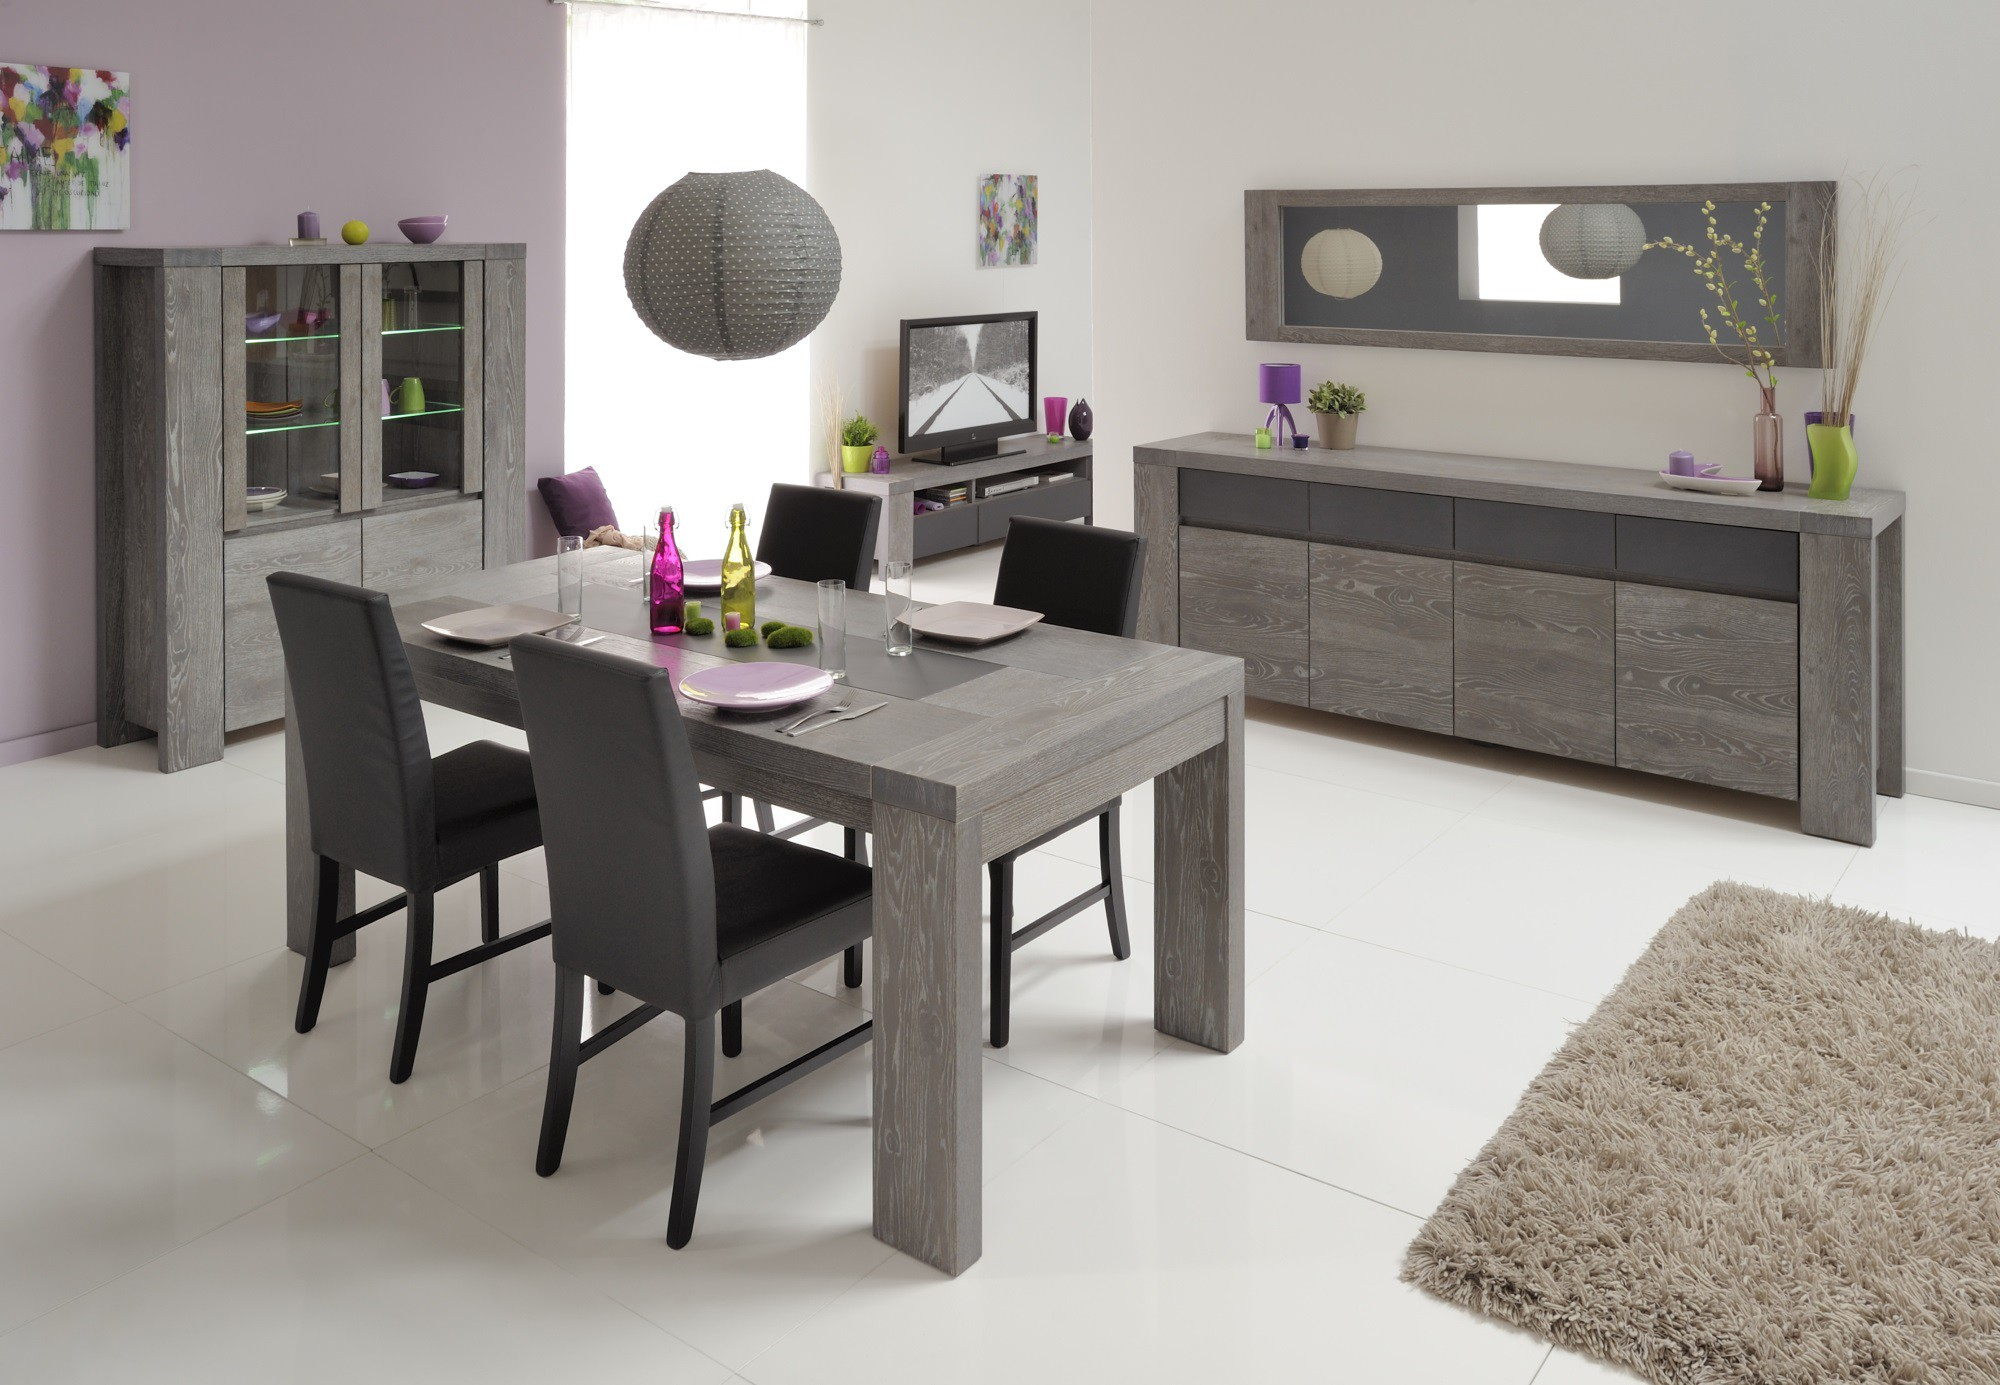 chaise salle a manger gris anthracite id es de. Black Bedroom Furniture Sets. Home Design Ideas